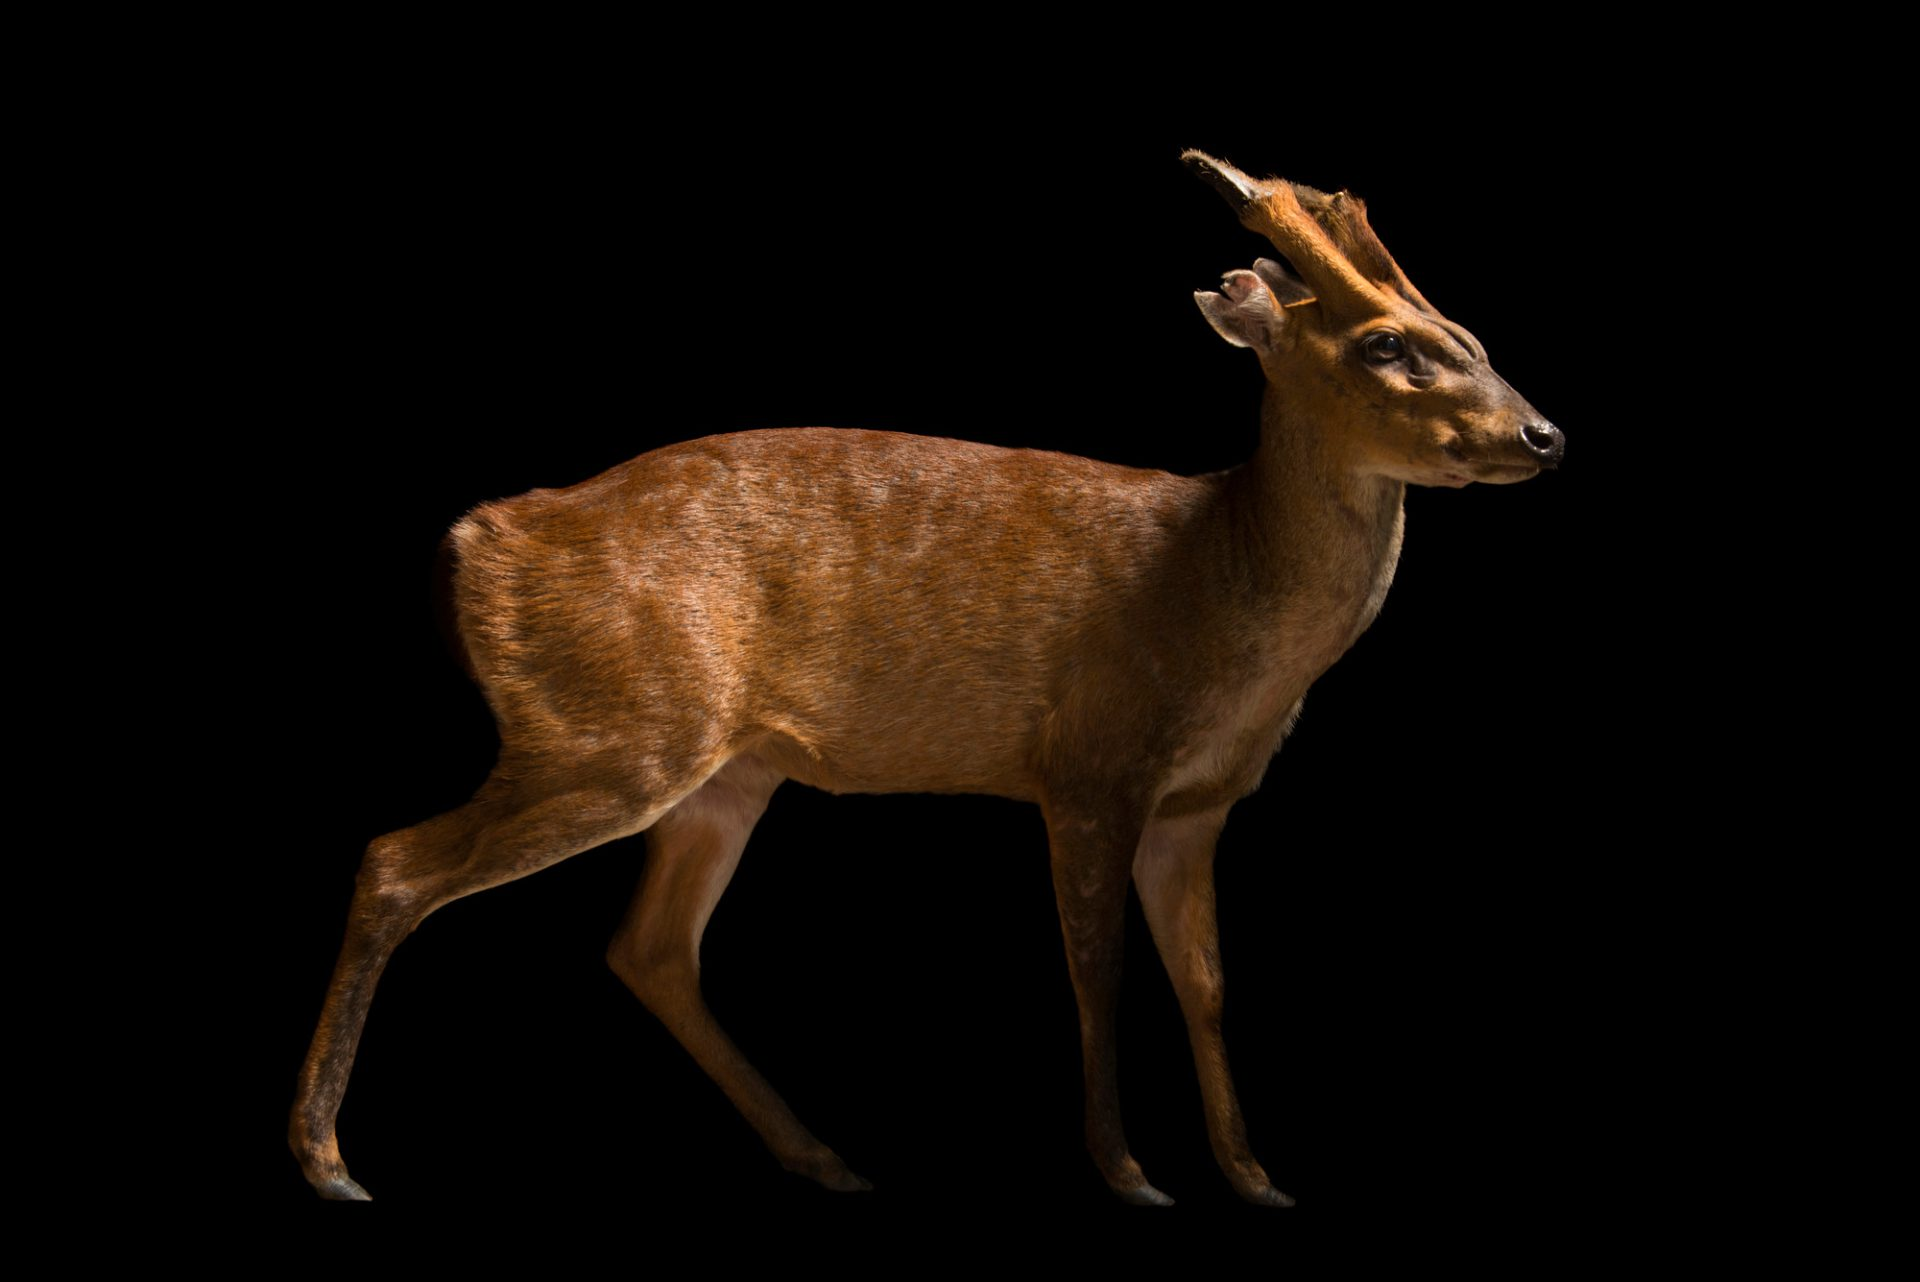 Photo: Peninsular barking deer (Muntiacus muntjak peninsulae) at Zoo Negara.